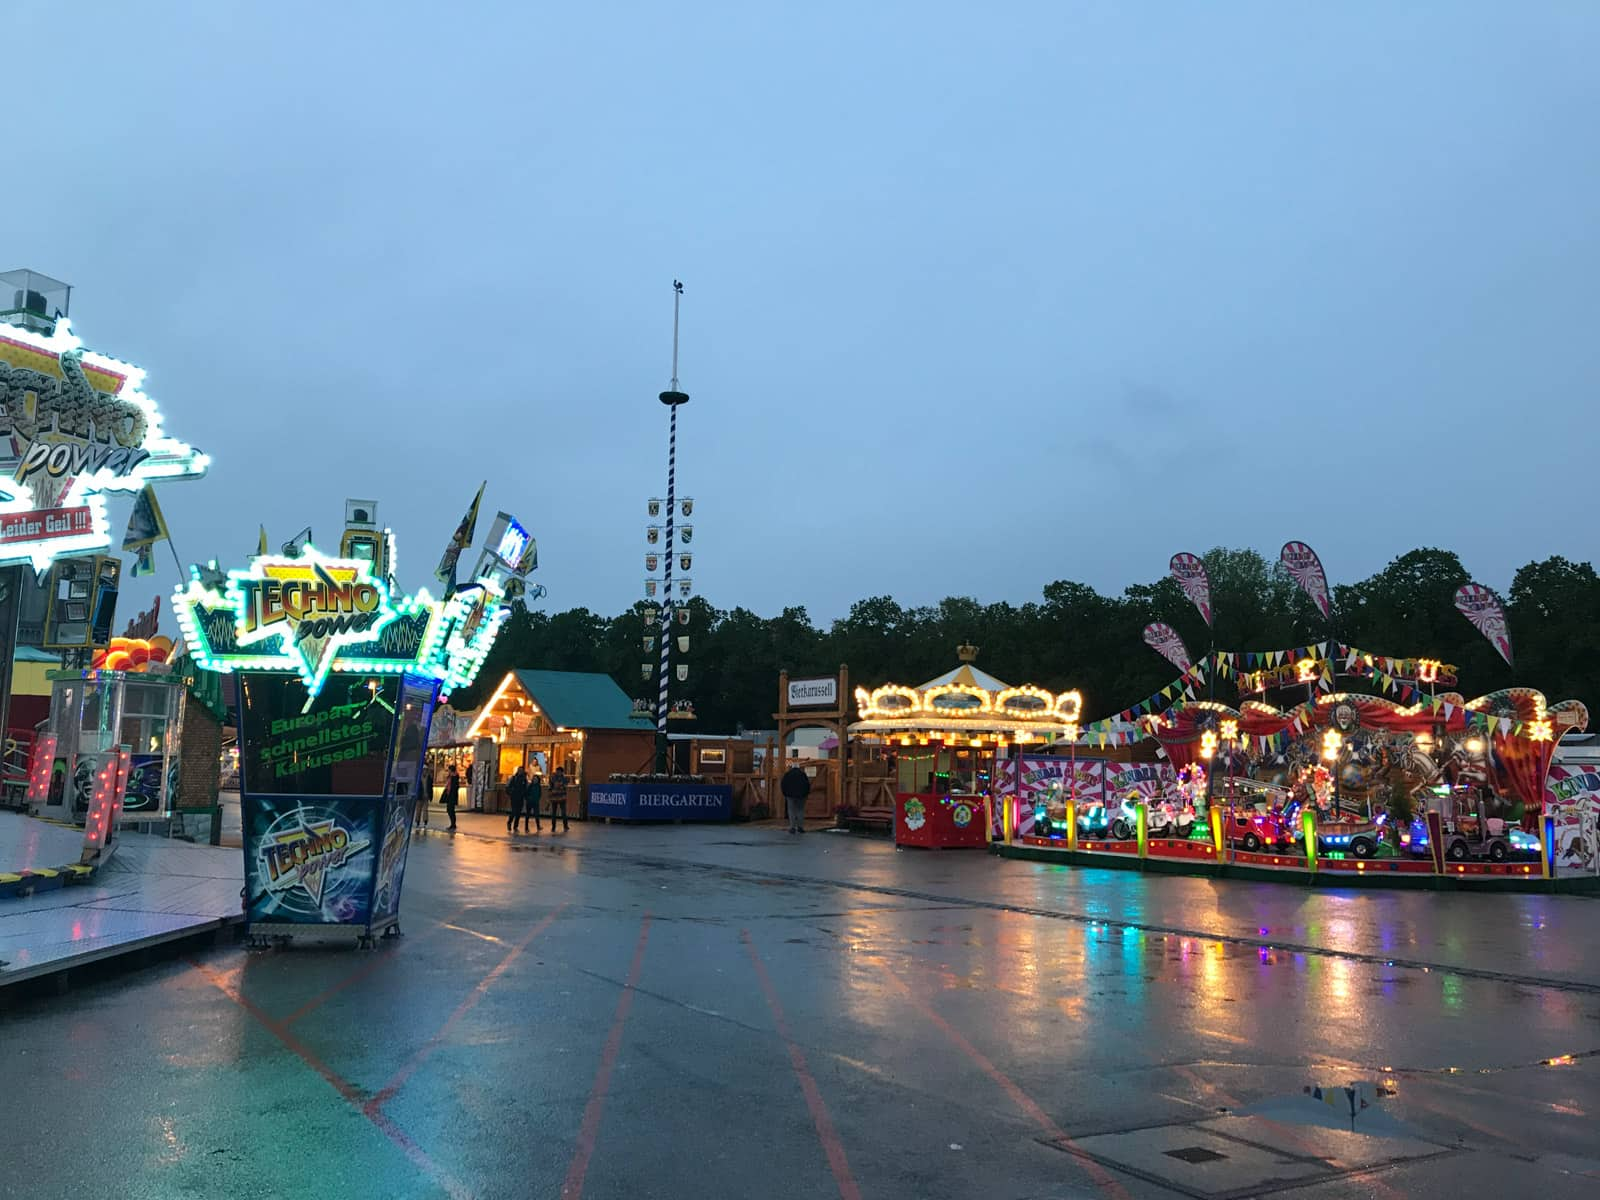 Another view of the fairground area